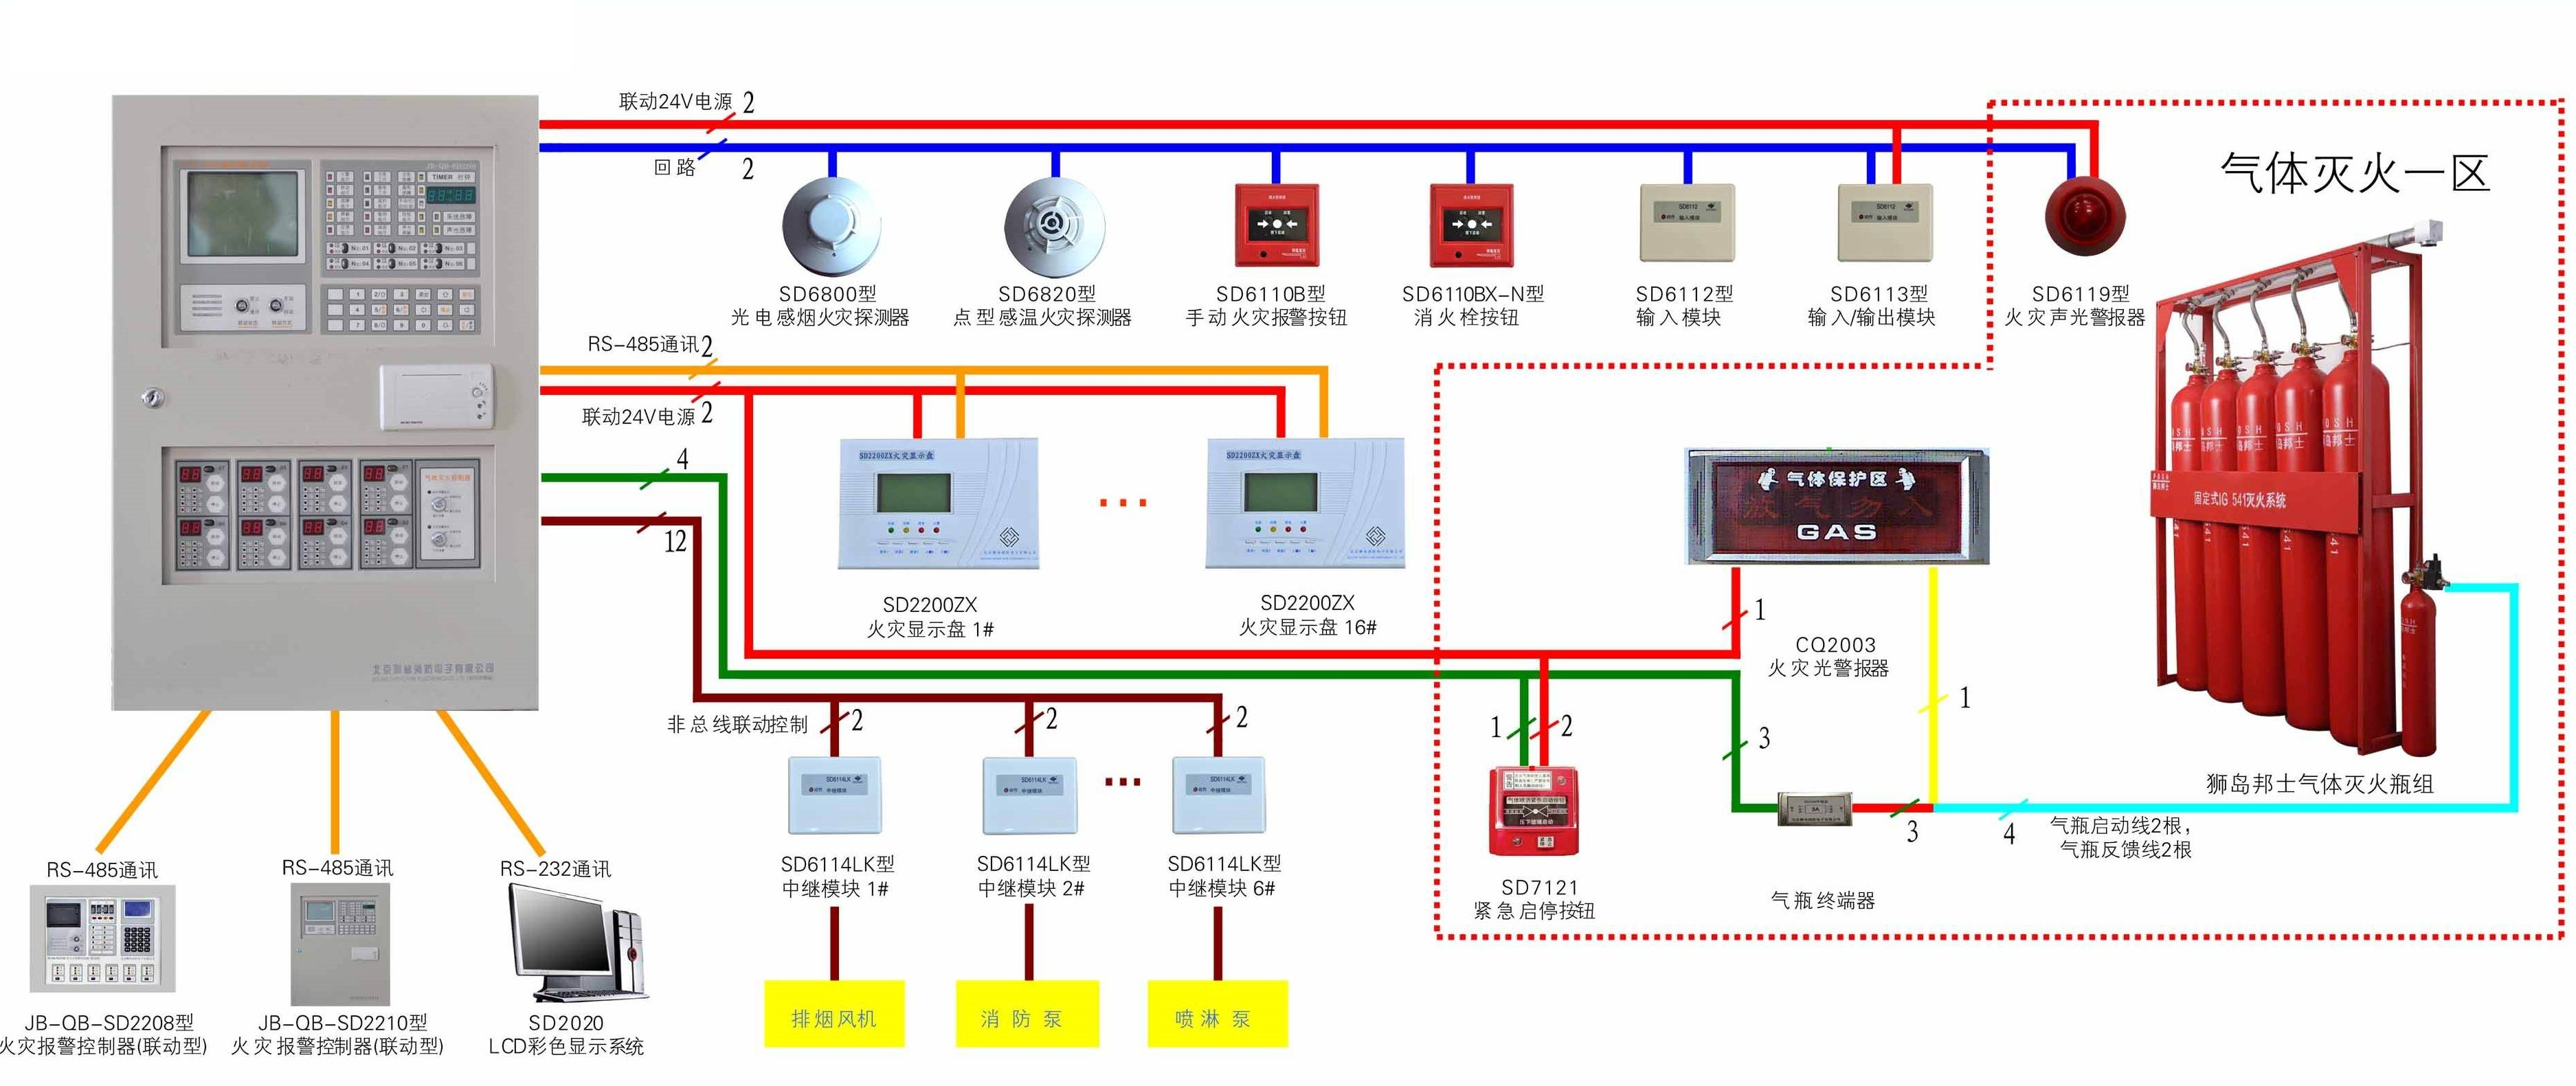 medium resolution of ow to start a fire security project from laying the pipeline to program fire detectors and debugging fire security circuit we guide you how to install the